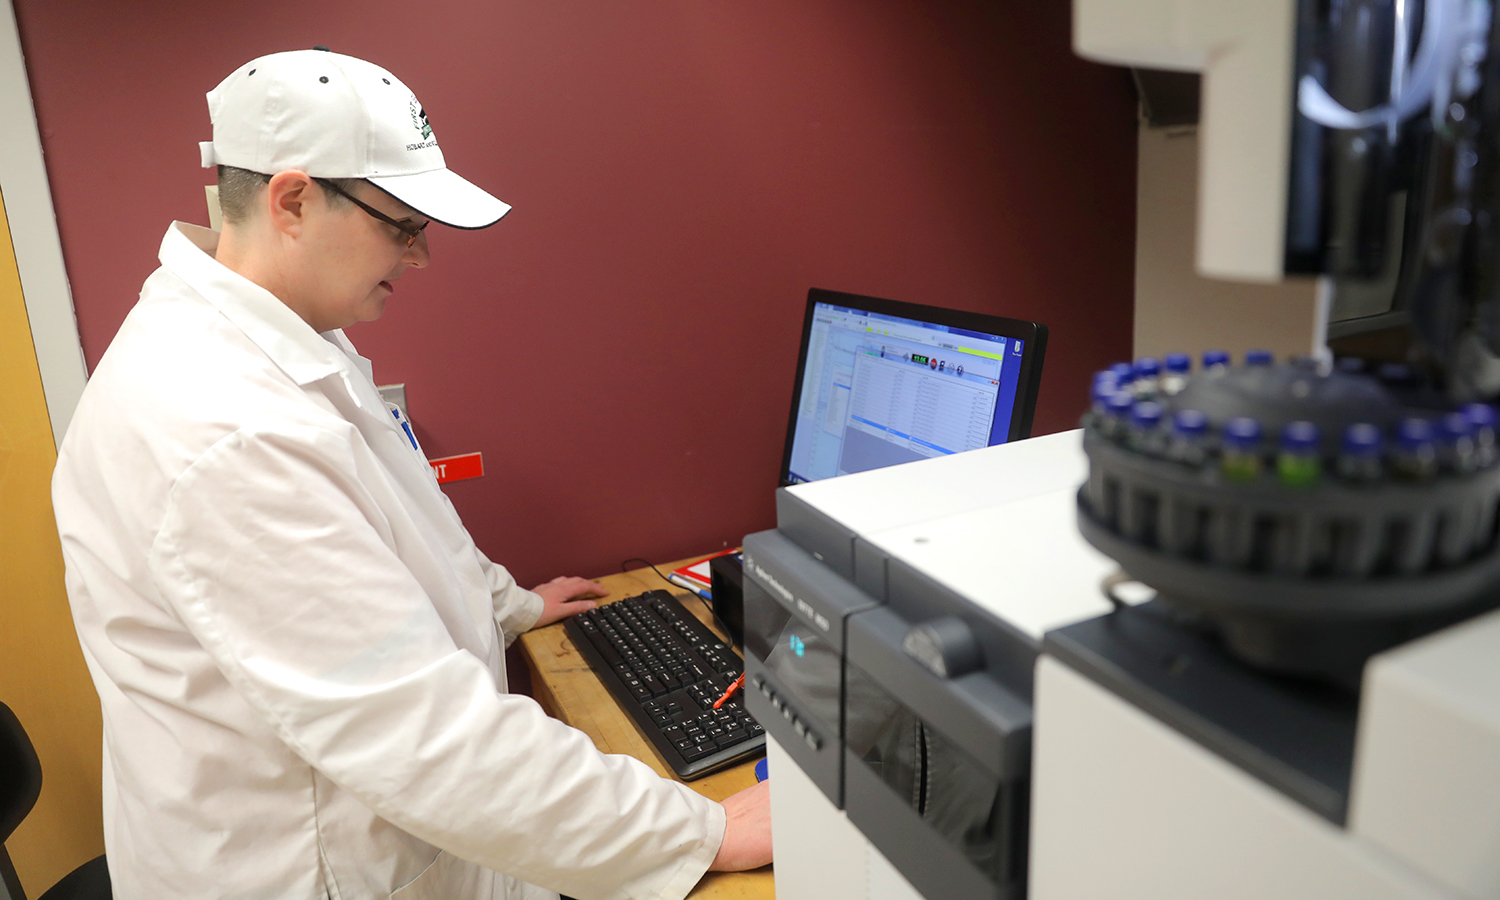 Associate Professor of Chemistry Christine de Denus analyzes samples using Gas Chromatography-Mass Spectrometry (GC-MS), a technique that determines the purity of materials as well the individual characteristics of molecules.